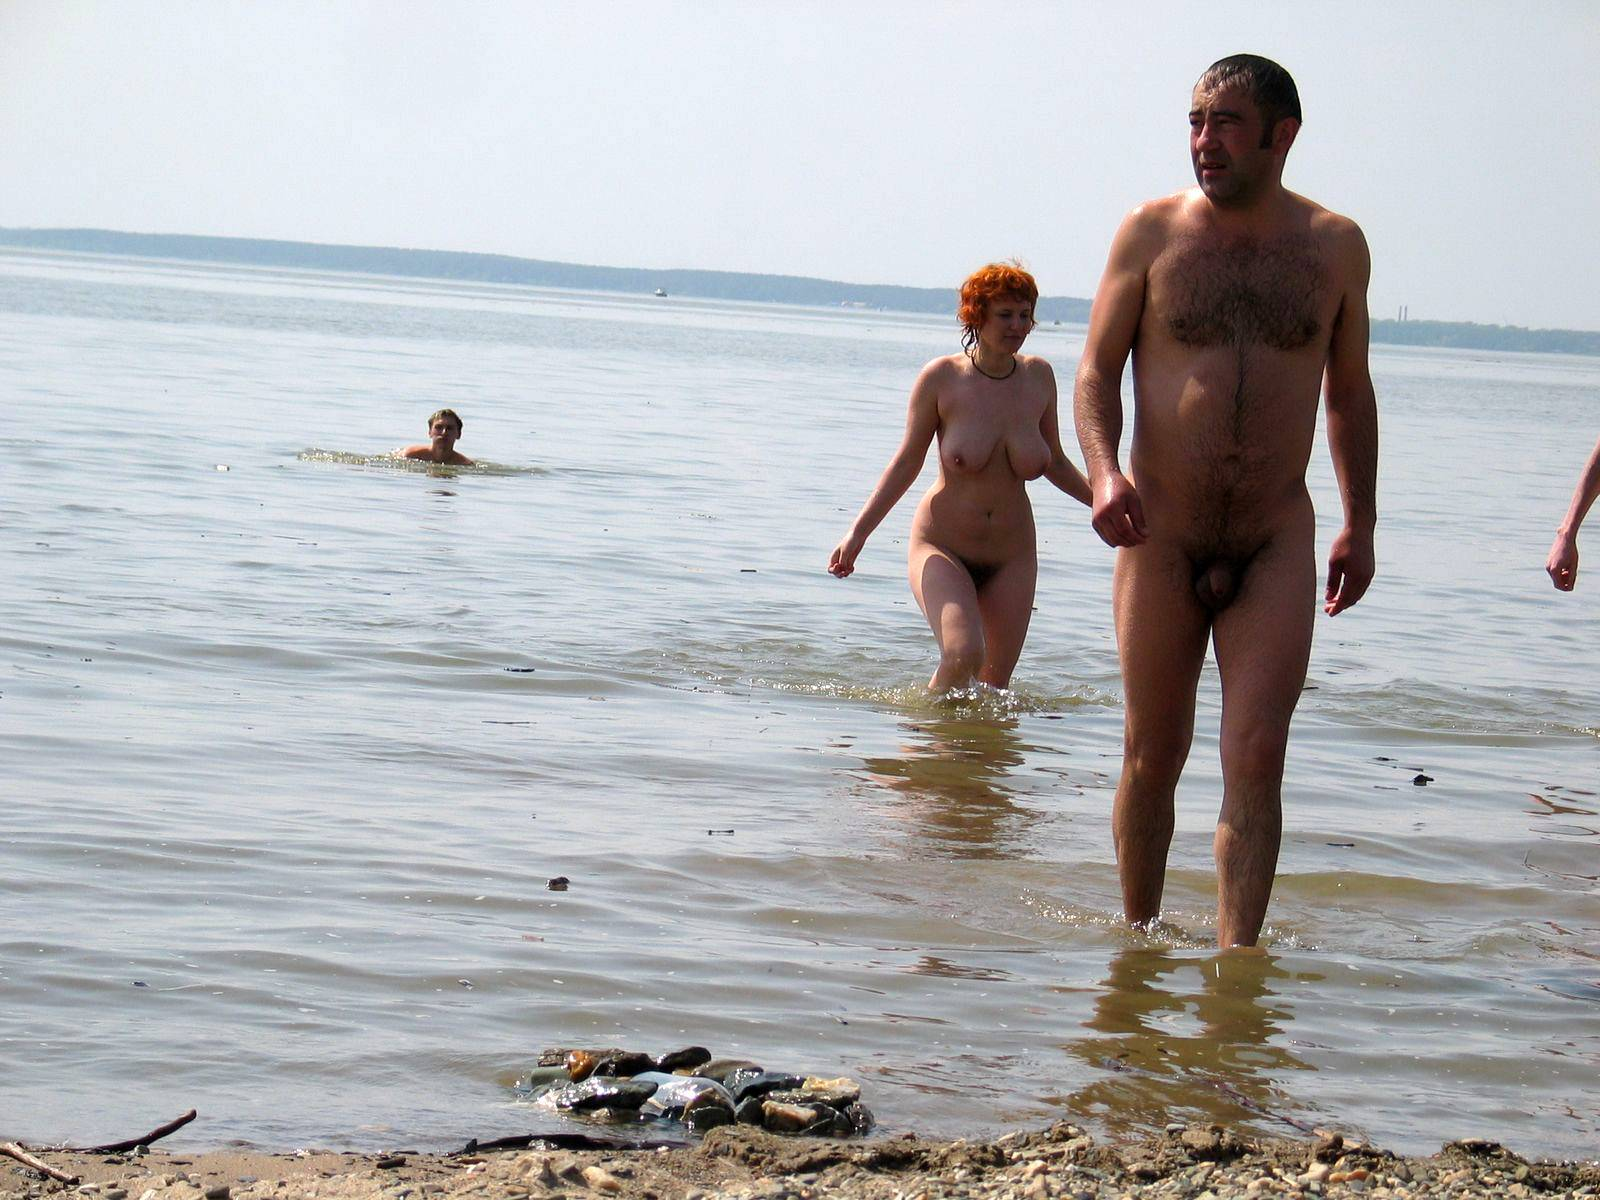 Nudist Pics Nude Beaches Russia - 2